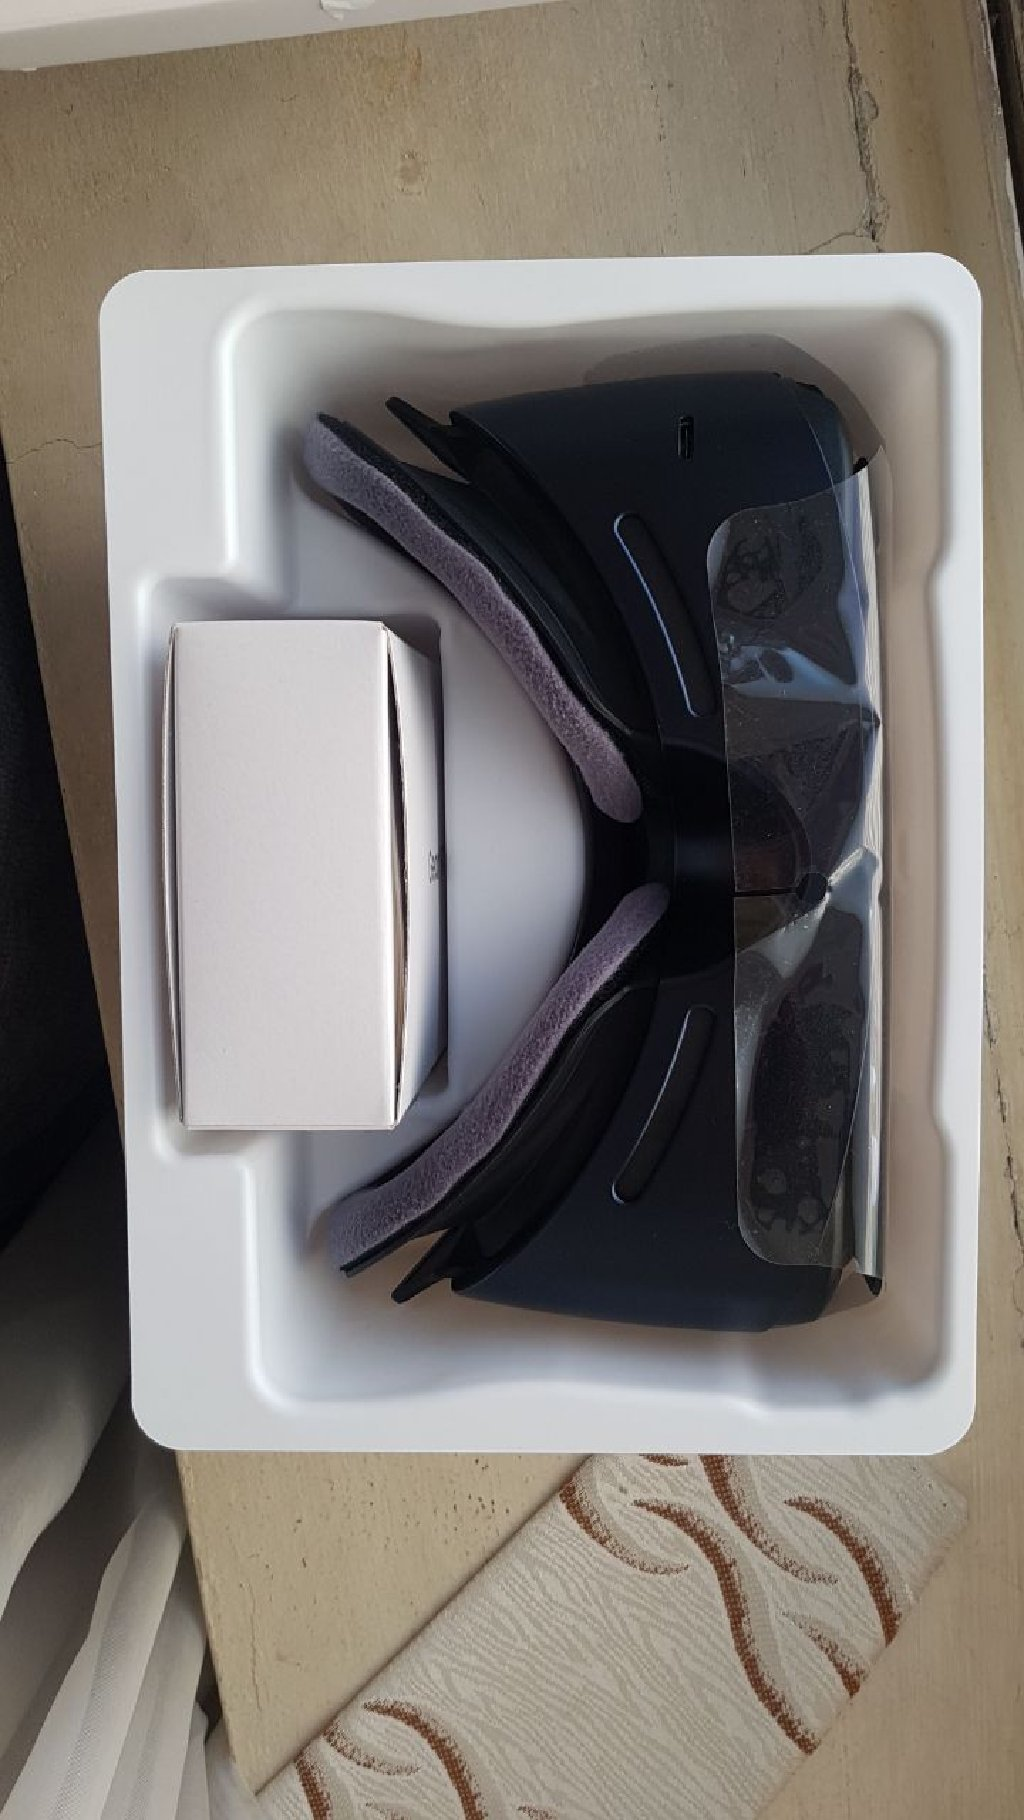 Gear VR for sale.... AFFORDABLE RATE!!